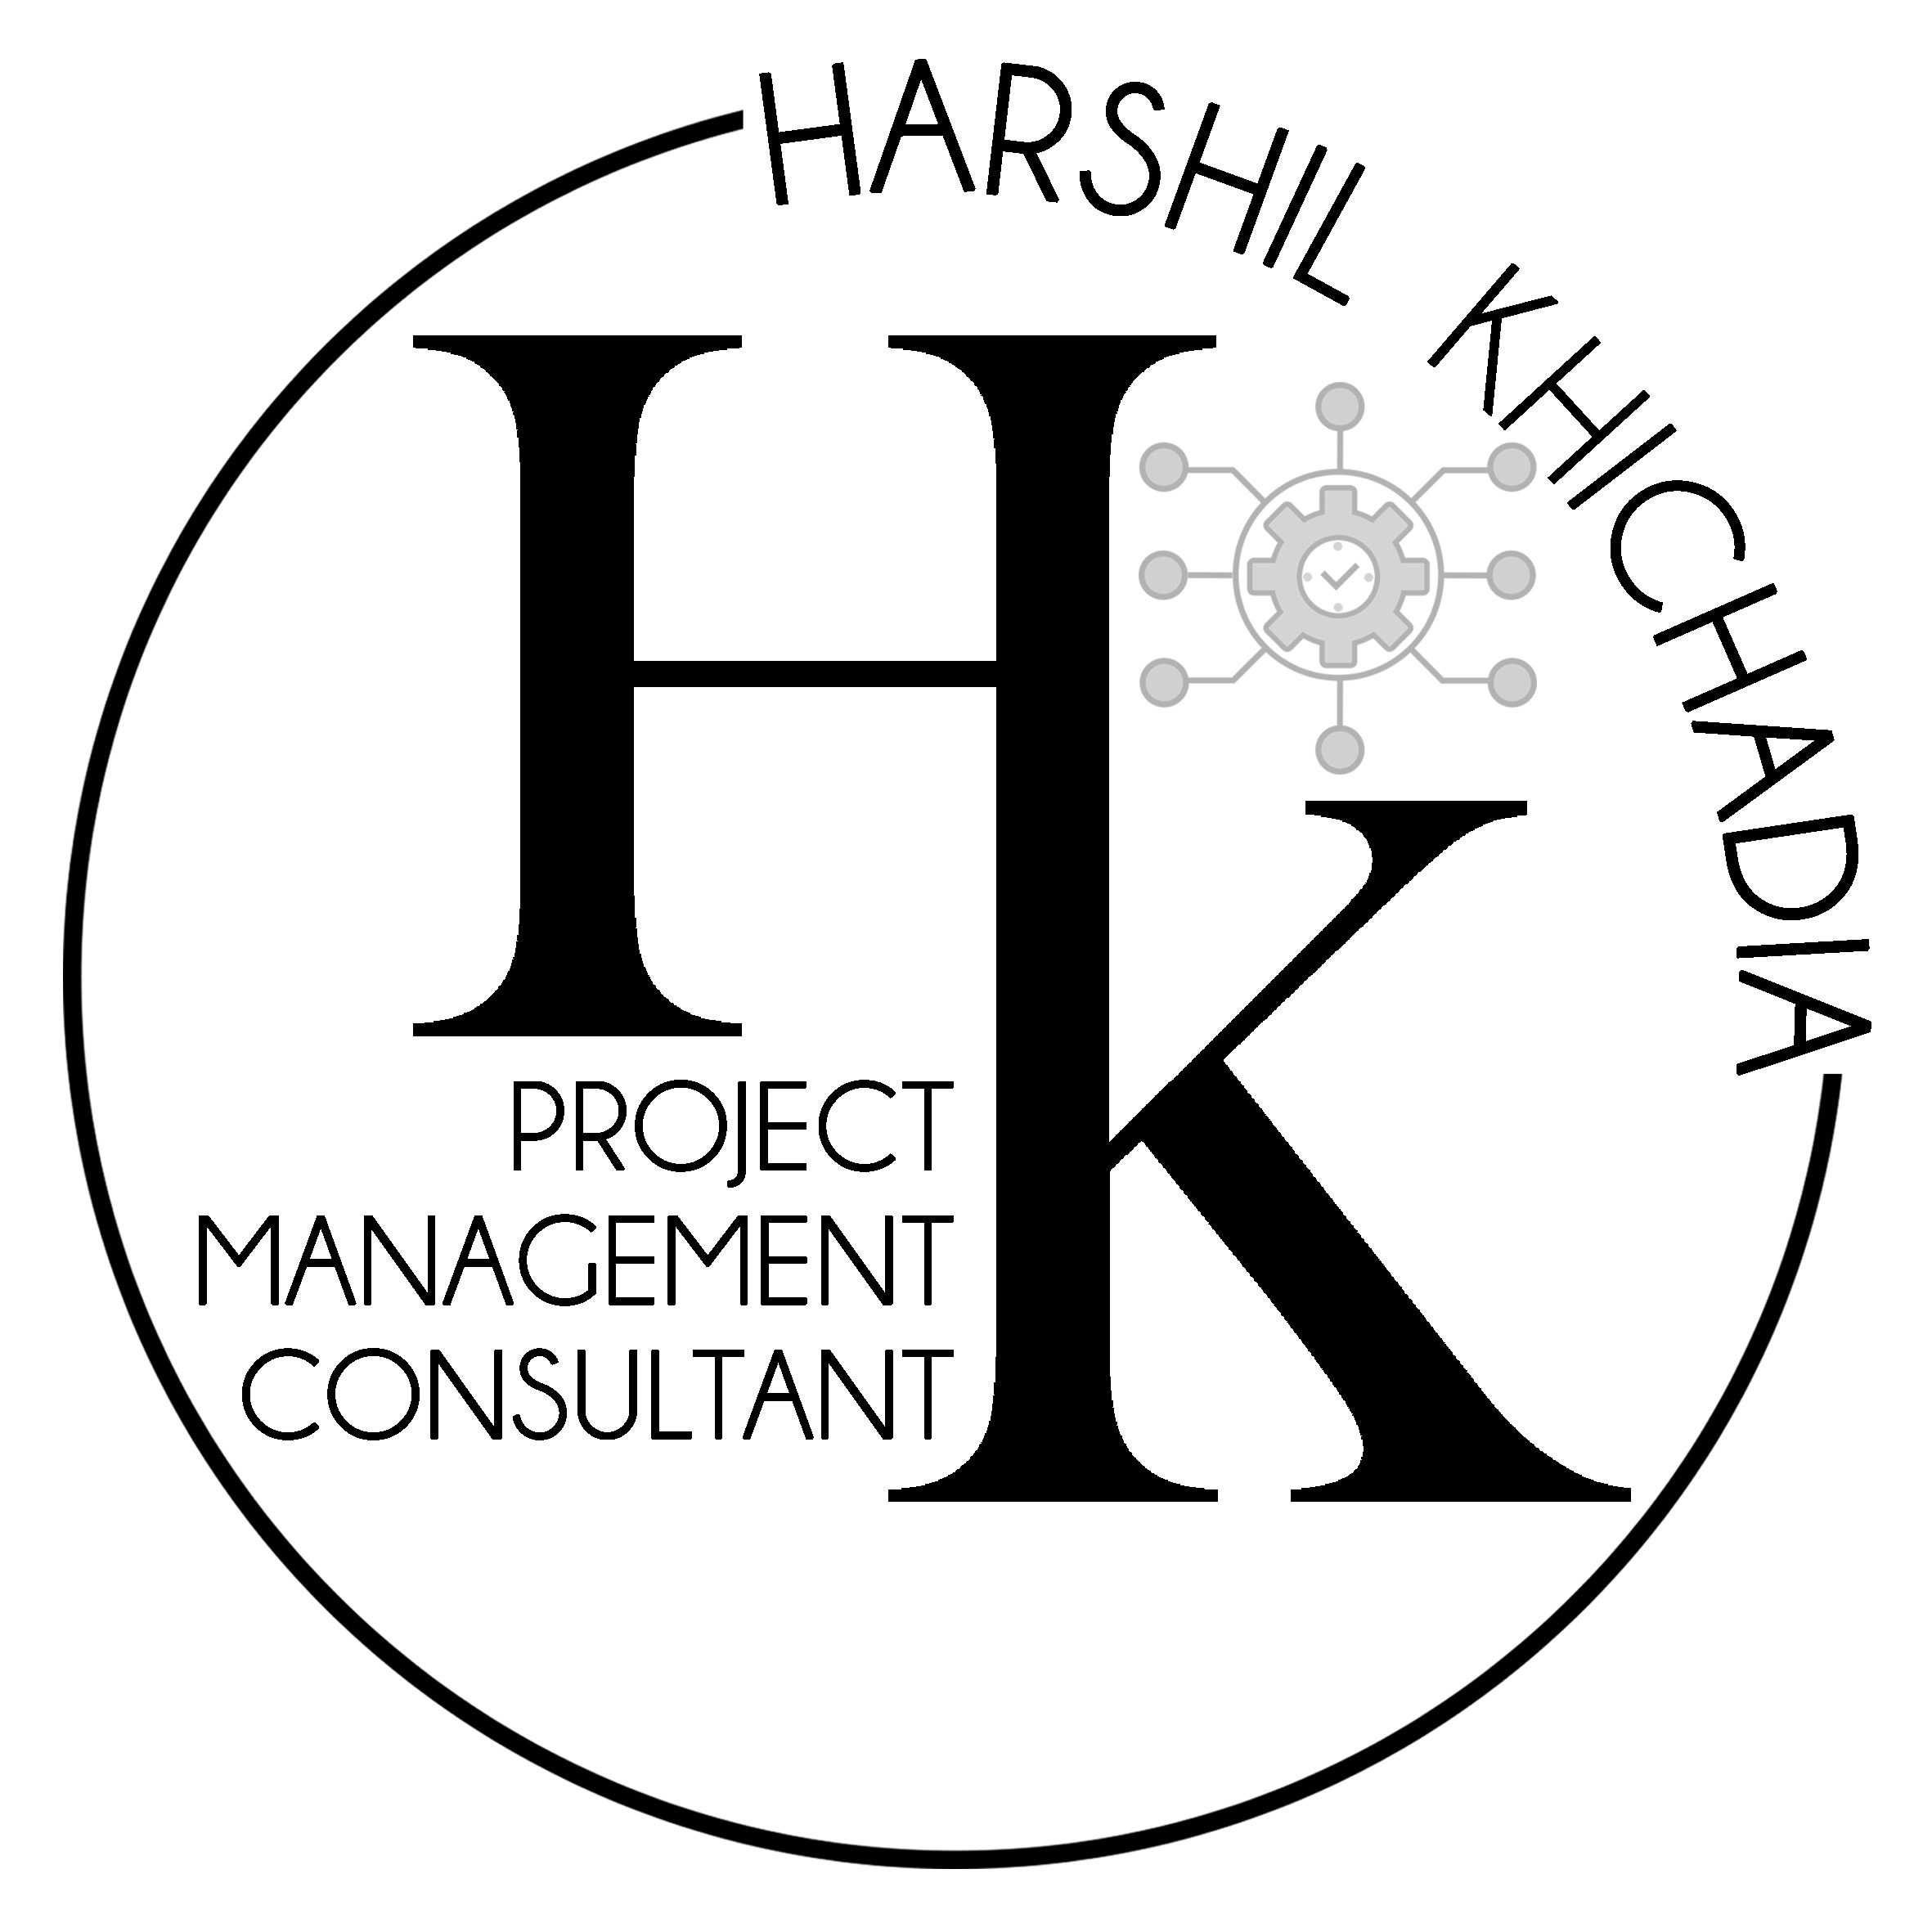 HARSHIL KHICHADIA PMC